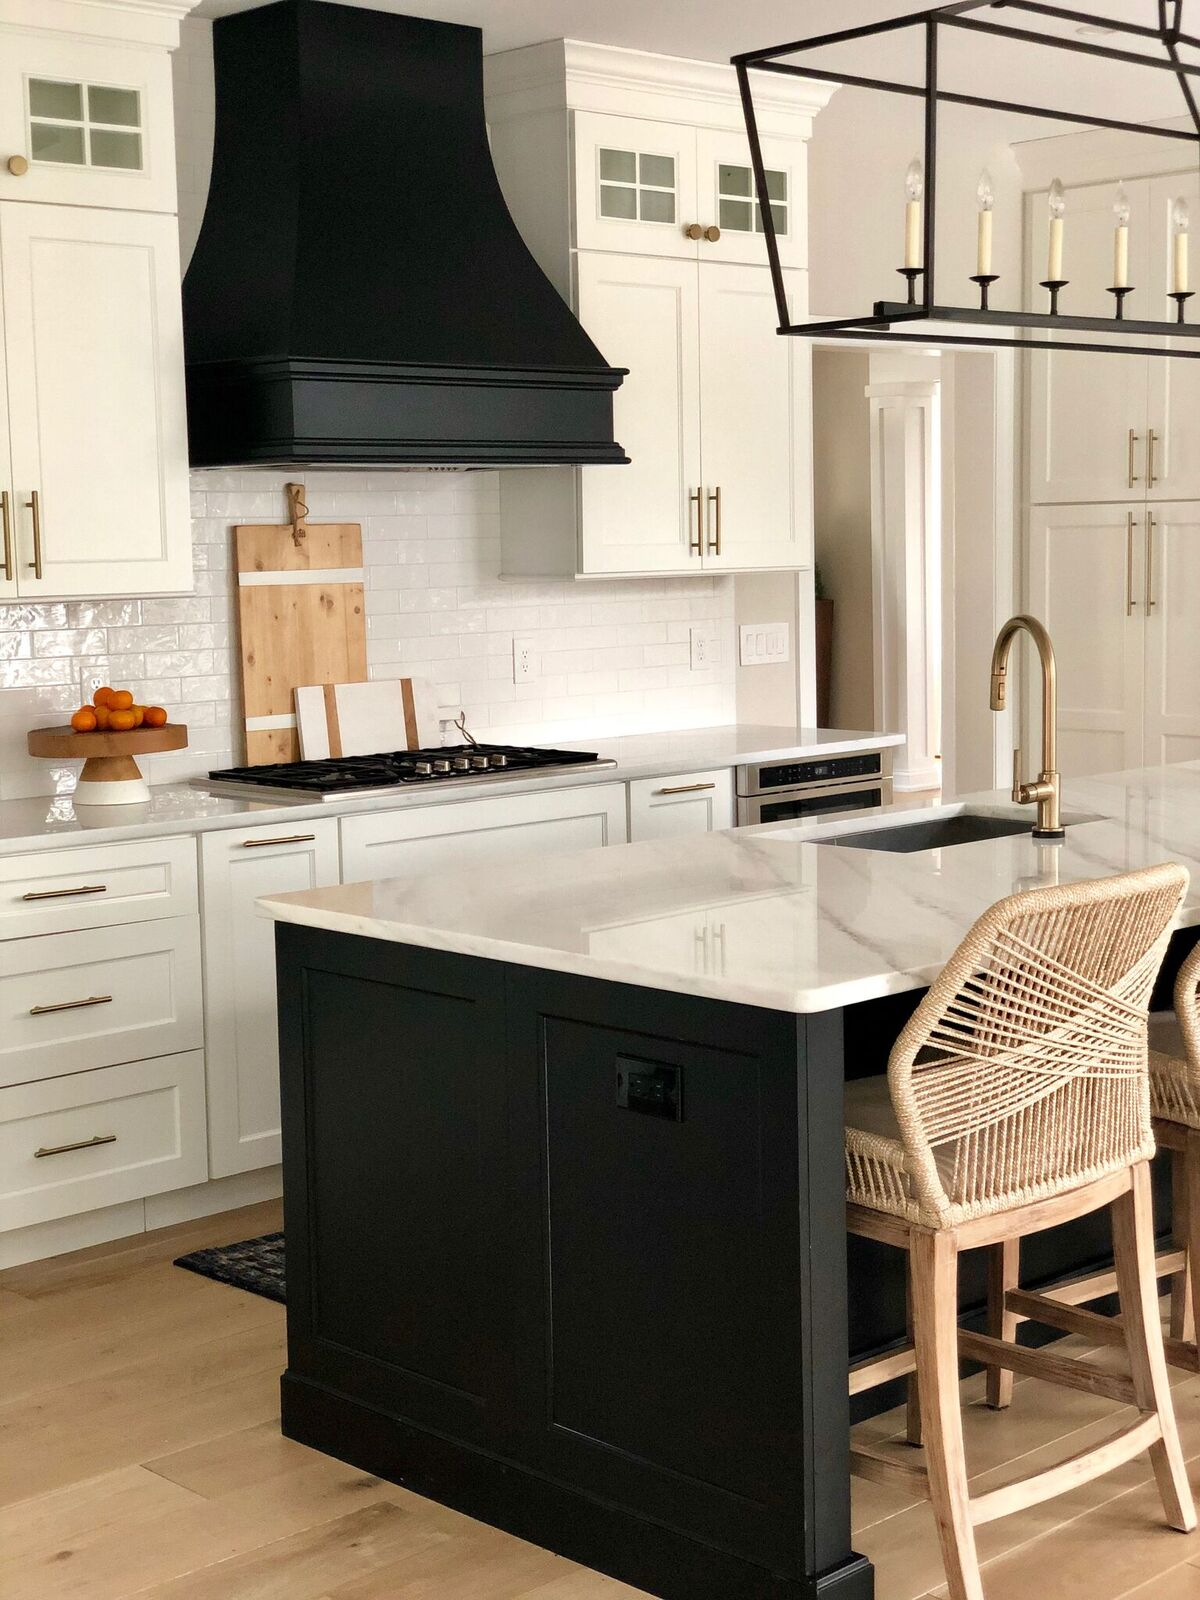 stephanie-kraus-designs-mainline-pa-kitchen-after-two-toned.jpg